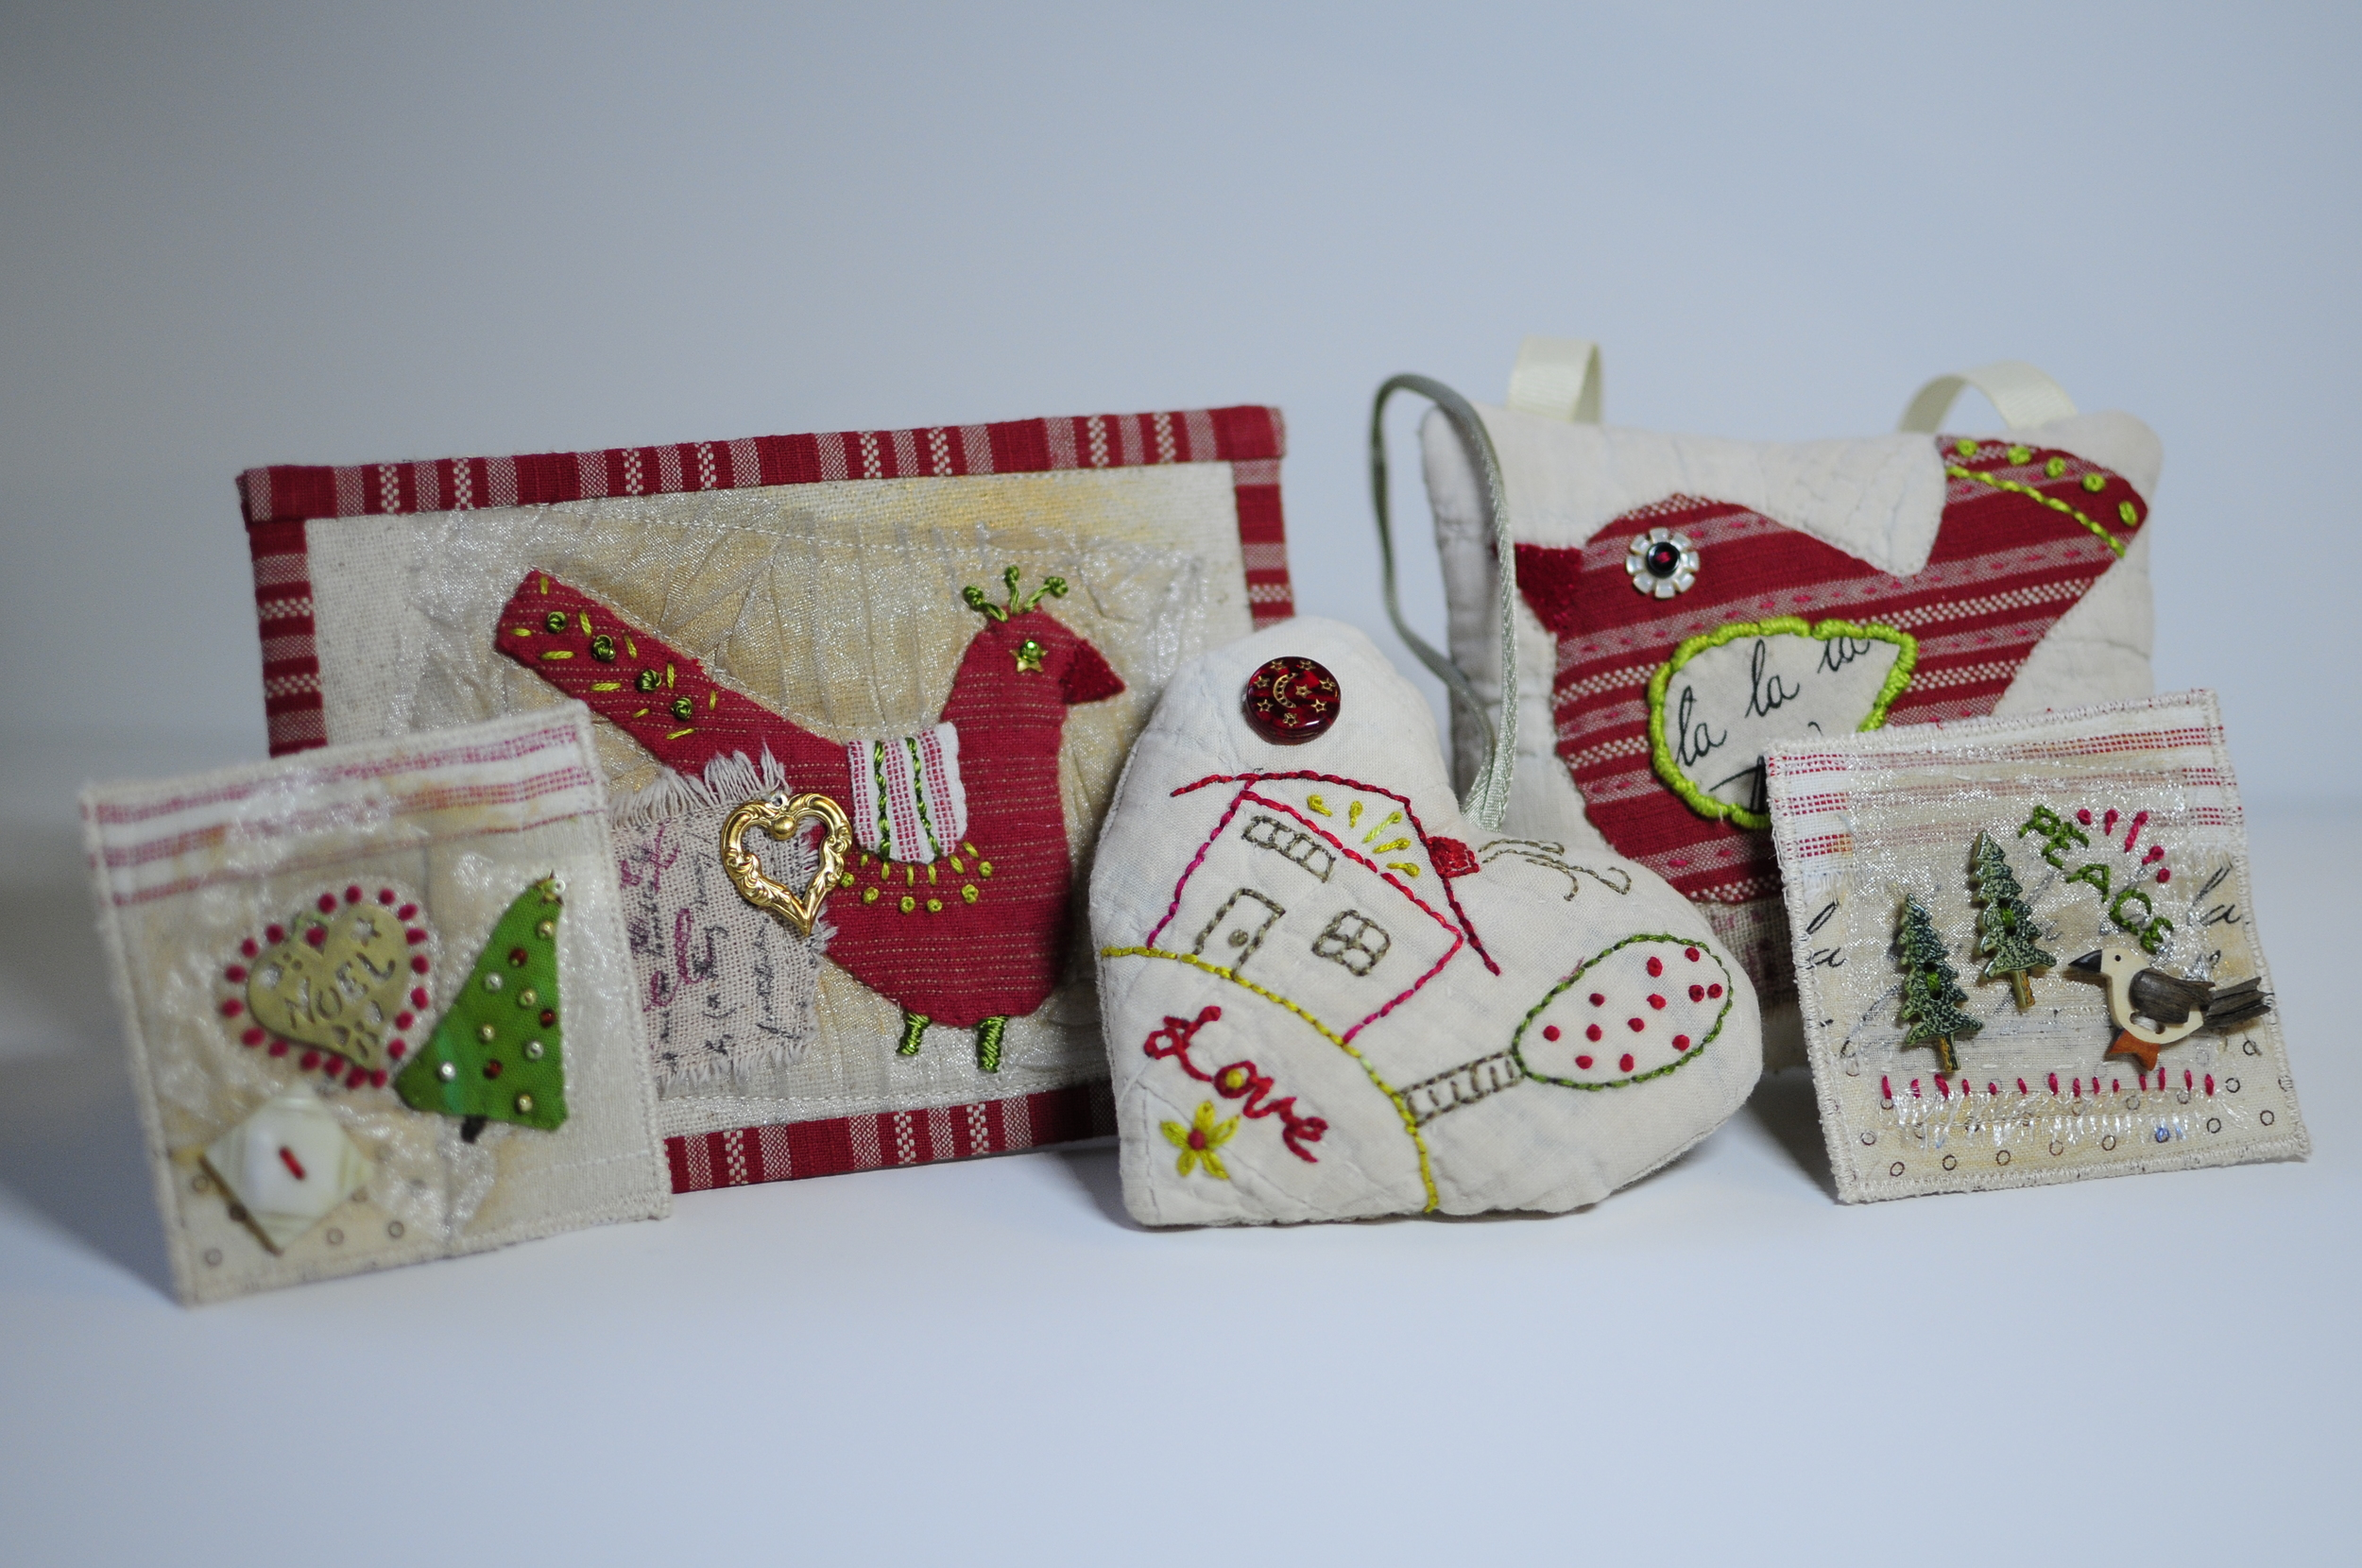 A Gathering of New Ornaments for 2013